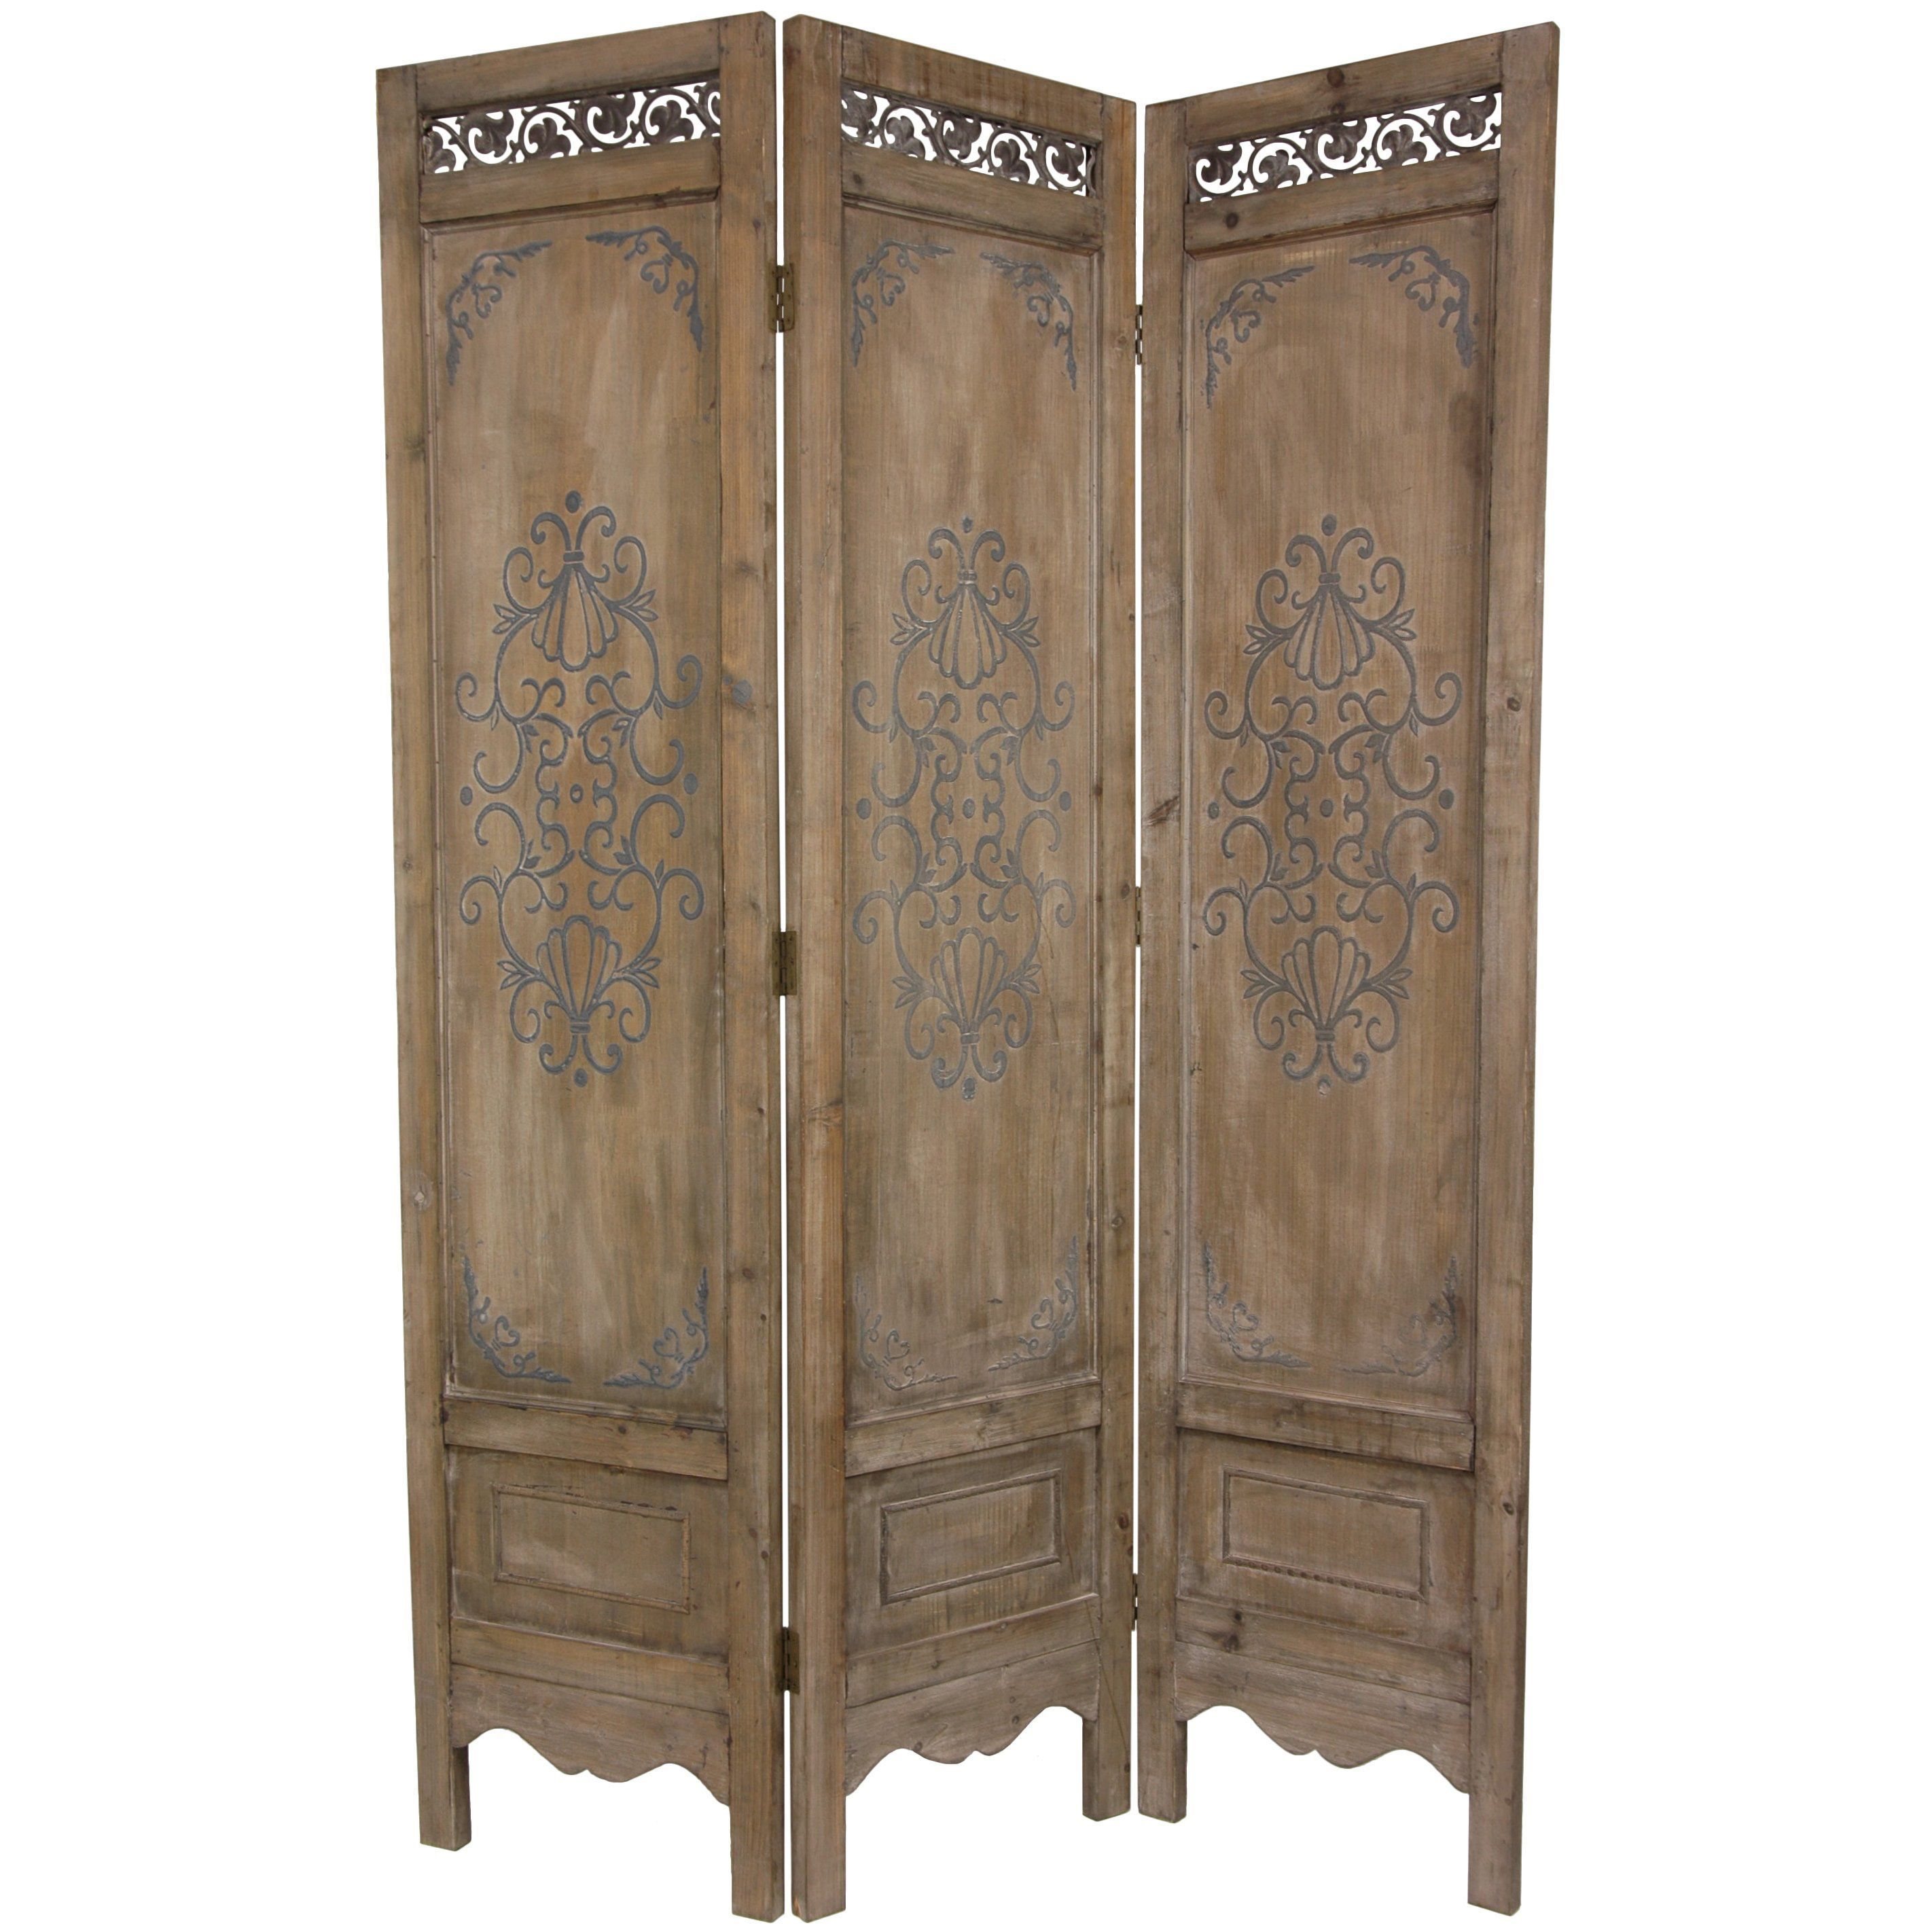 Hand crafted from kiln dried wood this room divider panel is hand detailed to create a sense of time and worn beauty this panel features a beautifully